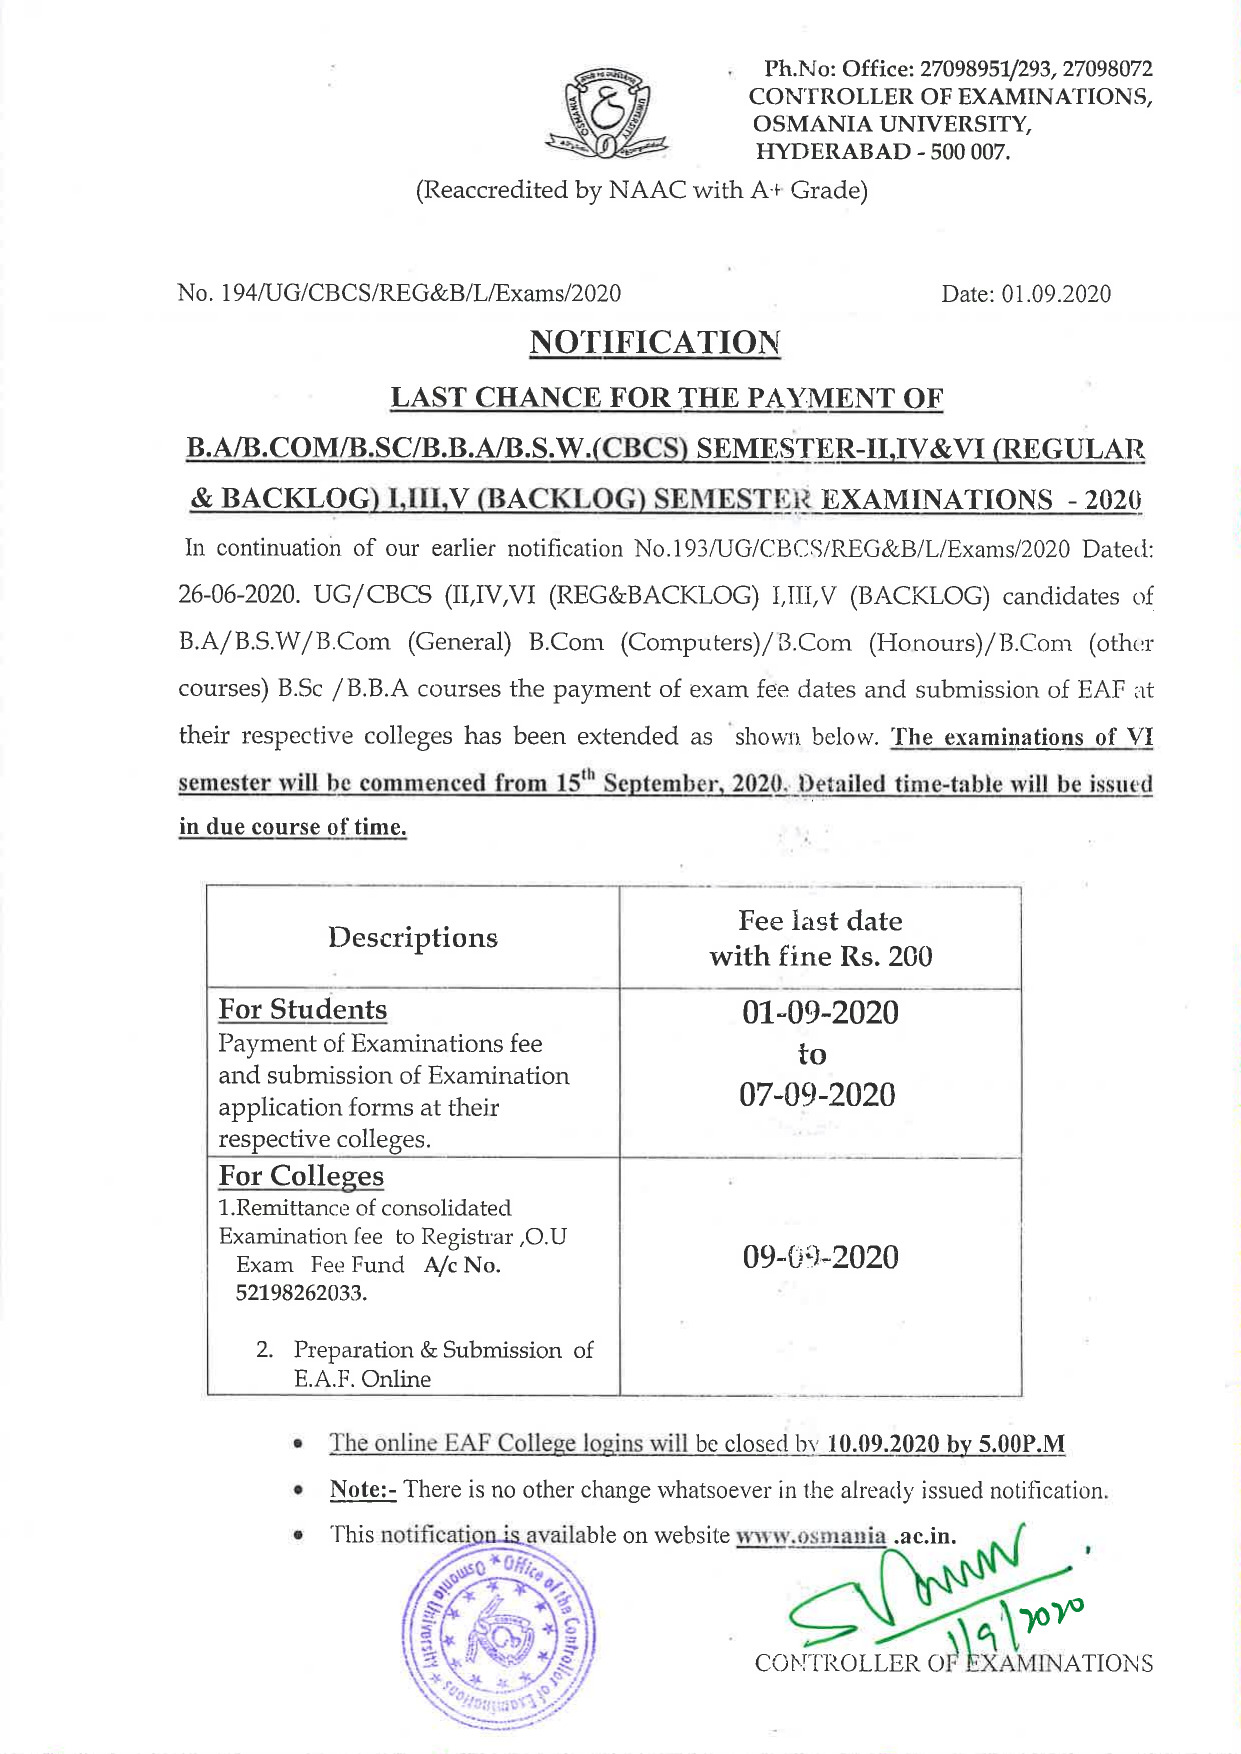 Osmania University UG (CBCS) Regular & Backlog Sep 2020 Exam Fee Notification